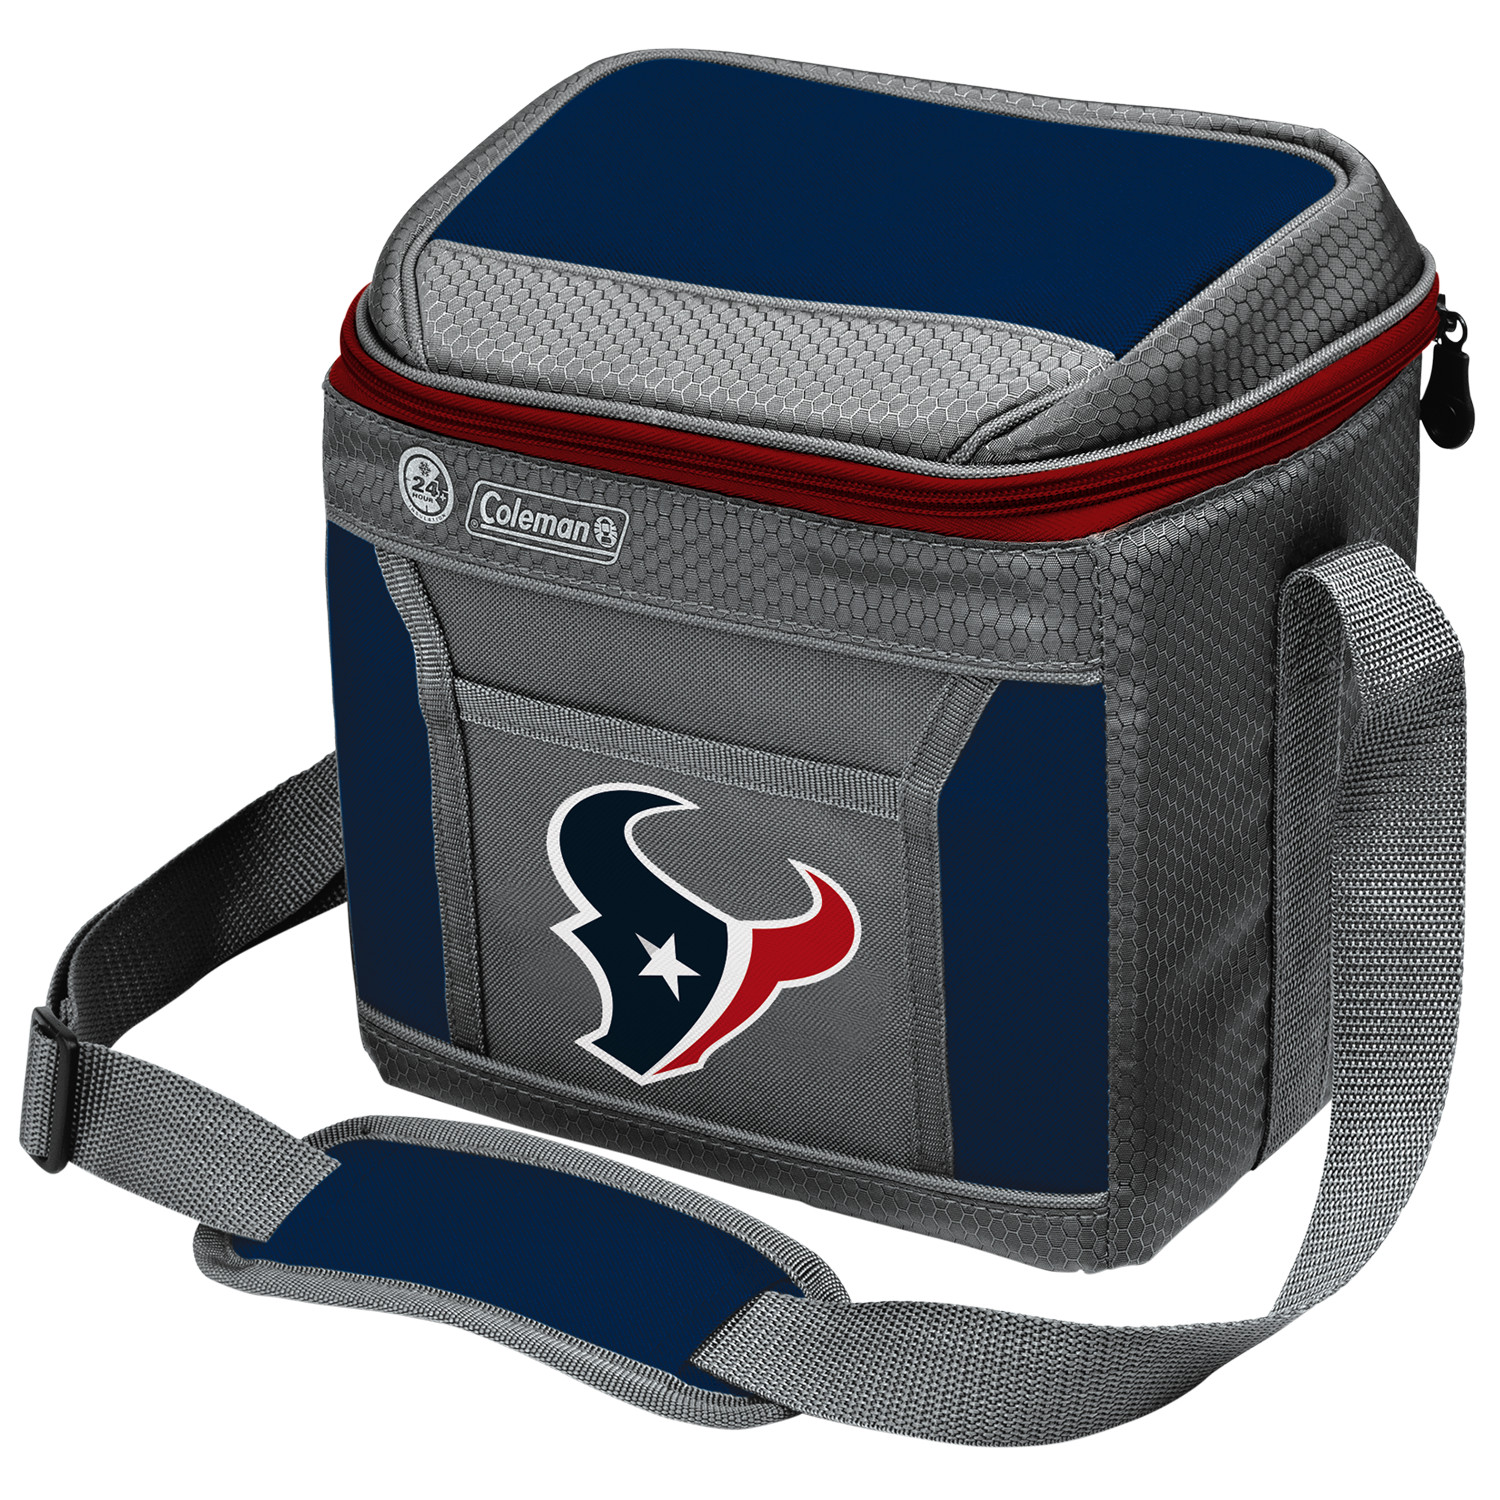 Houston Texans Coleman 9-Can 24-Hour Soft-Sided Cooler - No Size